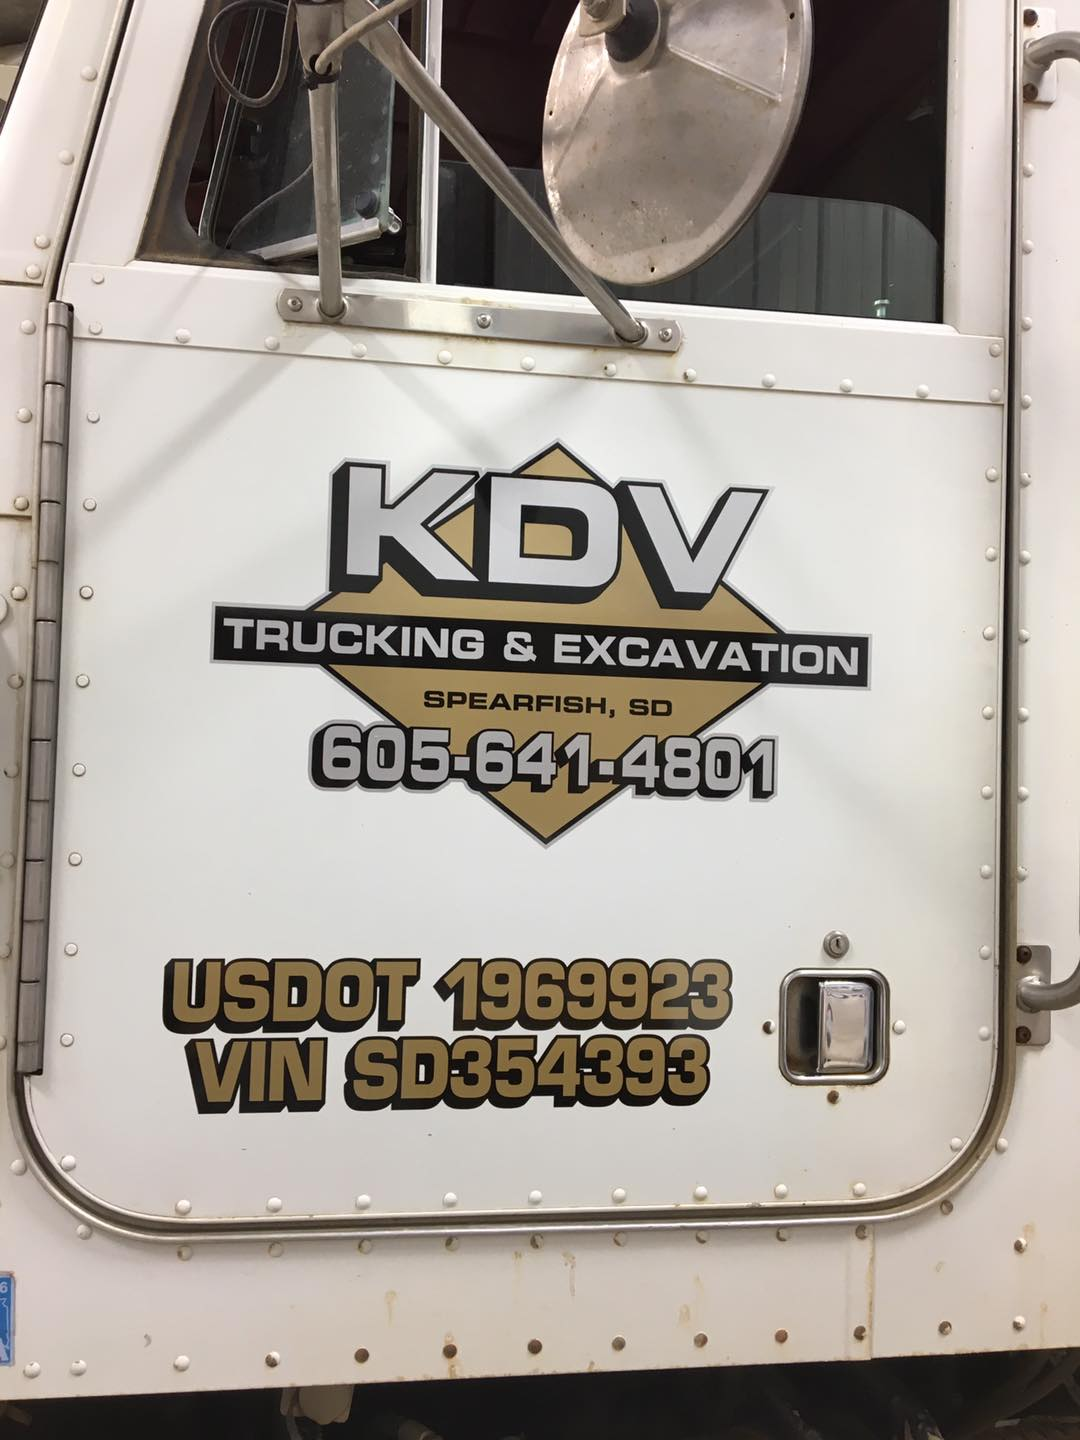 KDV Trucking & Excavation